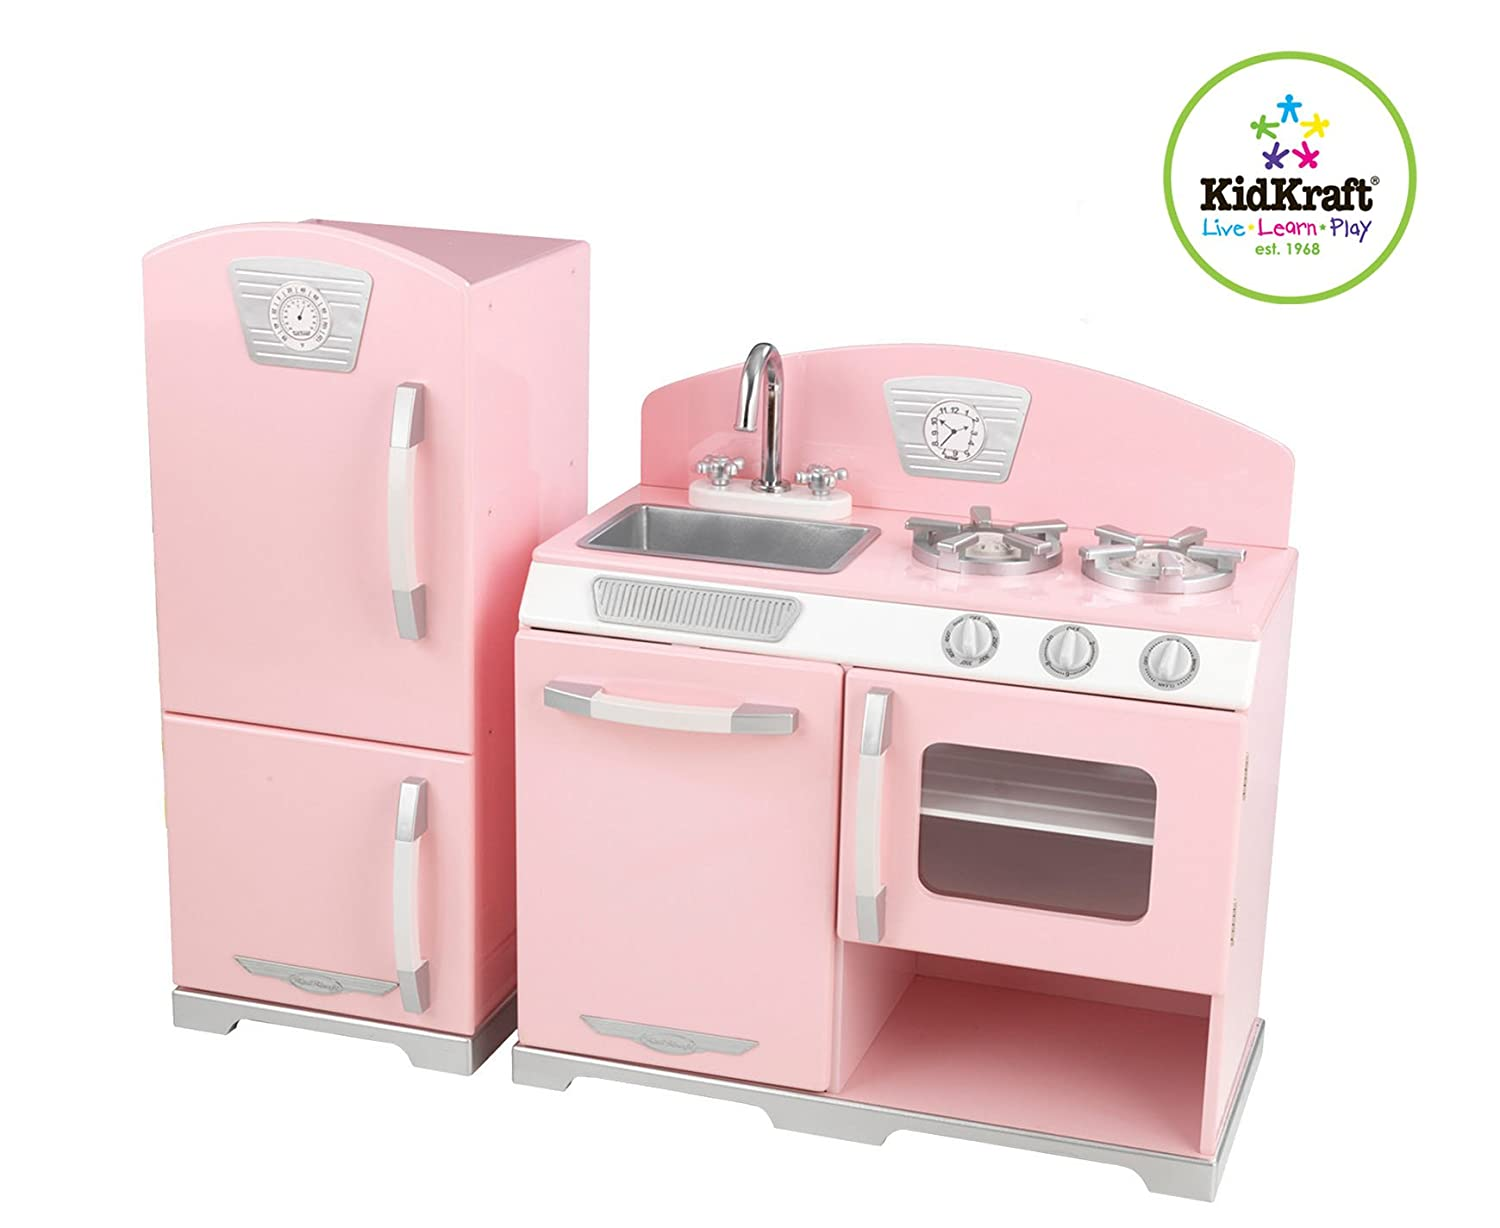 Pottery Barn Retro Kitchen Amazoncom Kidkraft Retro Kitchen And Refrigerator In Pink Toys